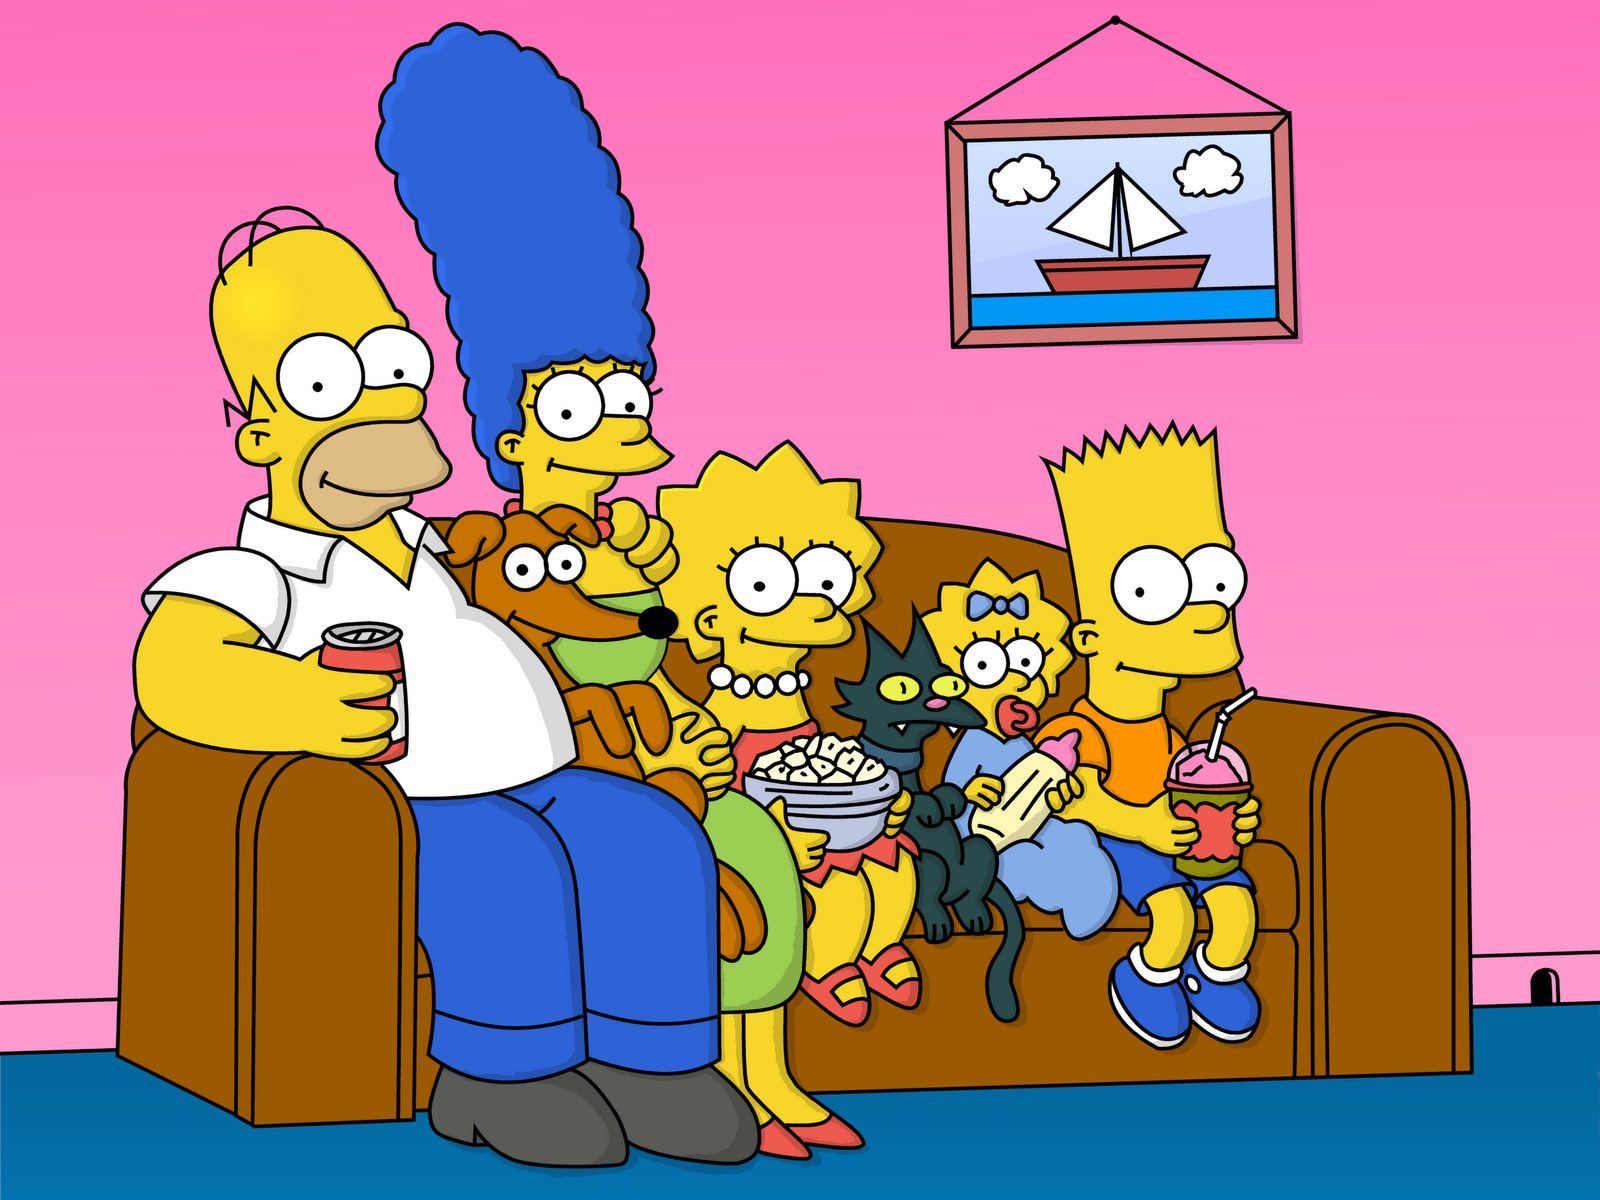 2015-04-07-1428425740-1274473-lossimpson.png